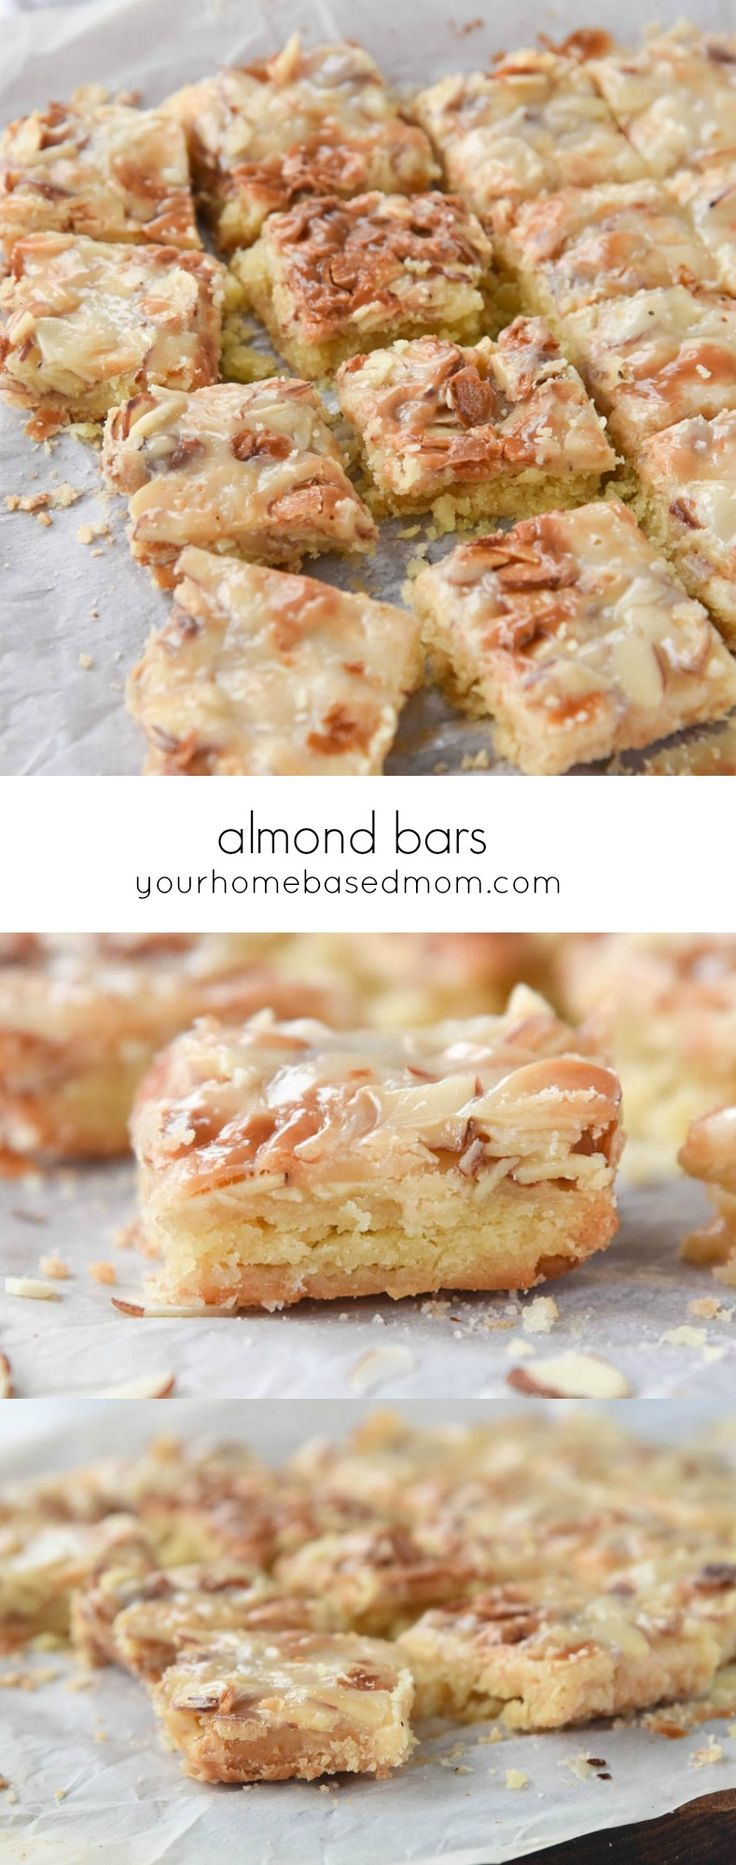 These Almond Bars are chewy and crunchy all at the same time you aren't going to be able to stop eating them!